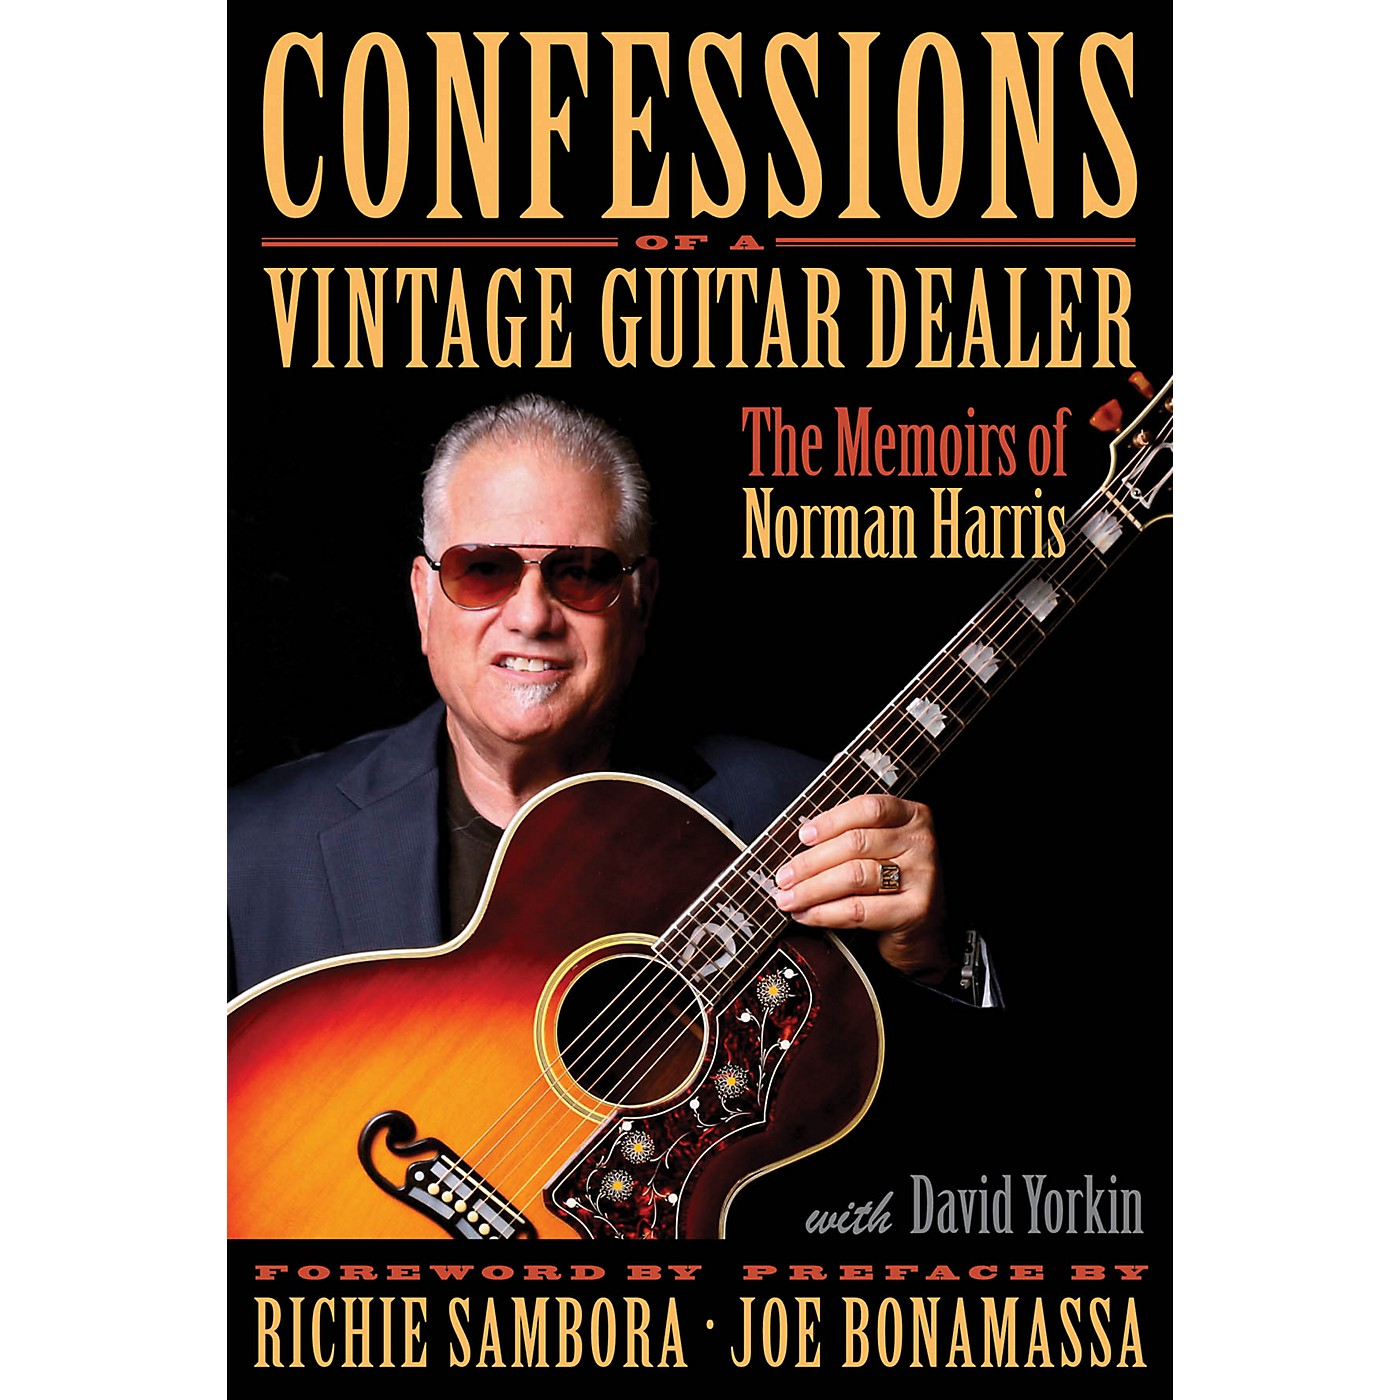 Hal Leonard Confessions of a Vintage Guitar Dealer Book Series Hardcover Written by Norman Harris thumbnail